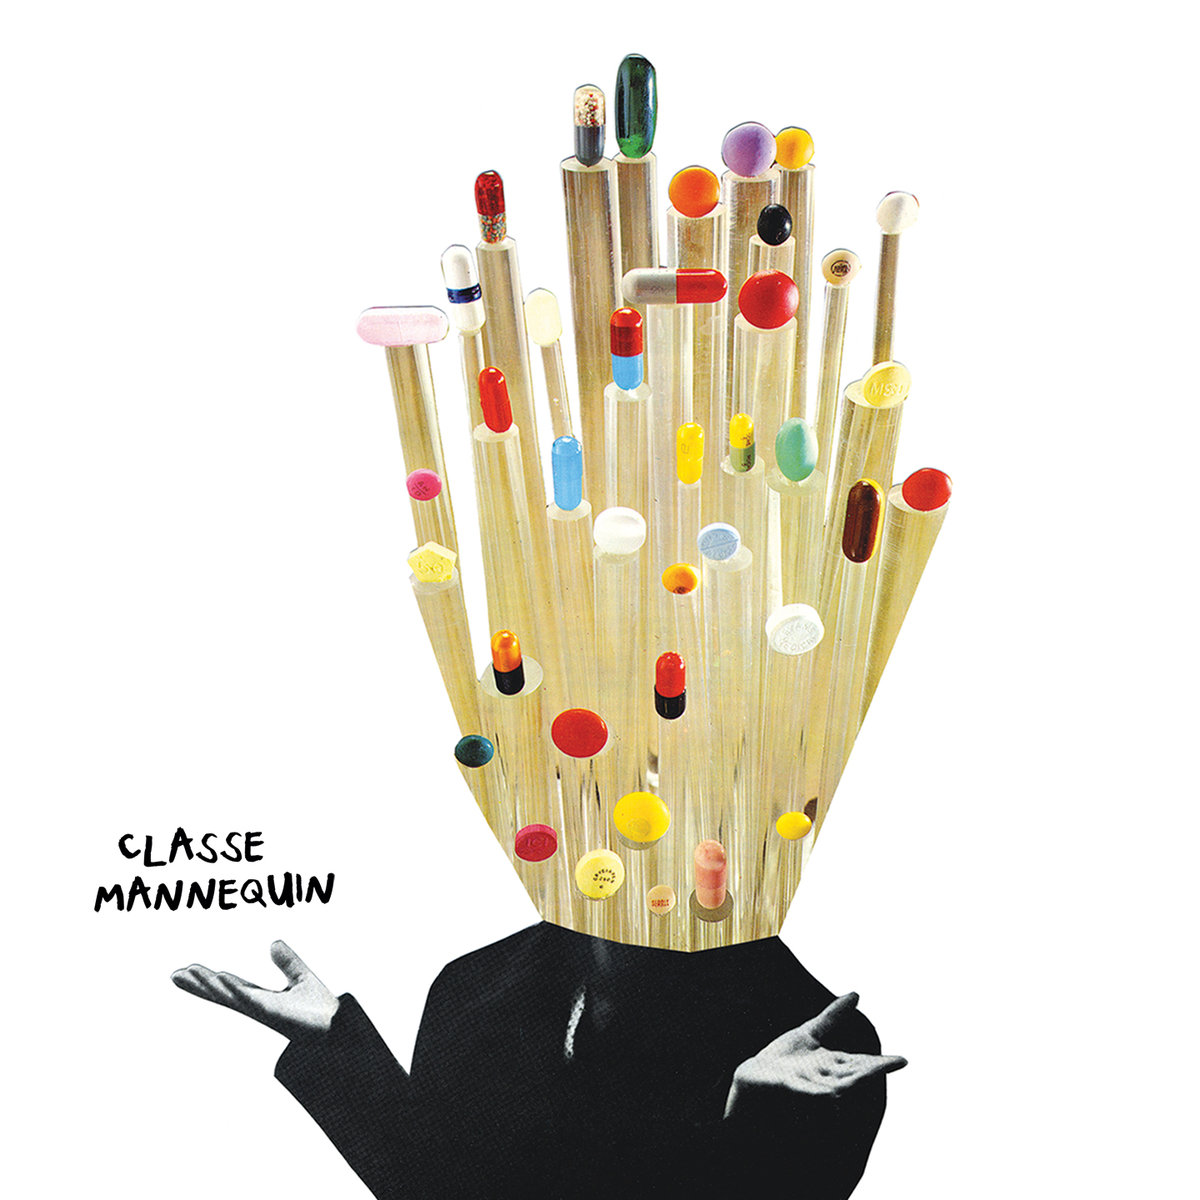 CLASSE MANNEQUIN - Self Titled